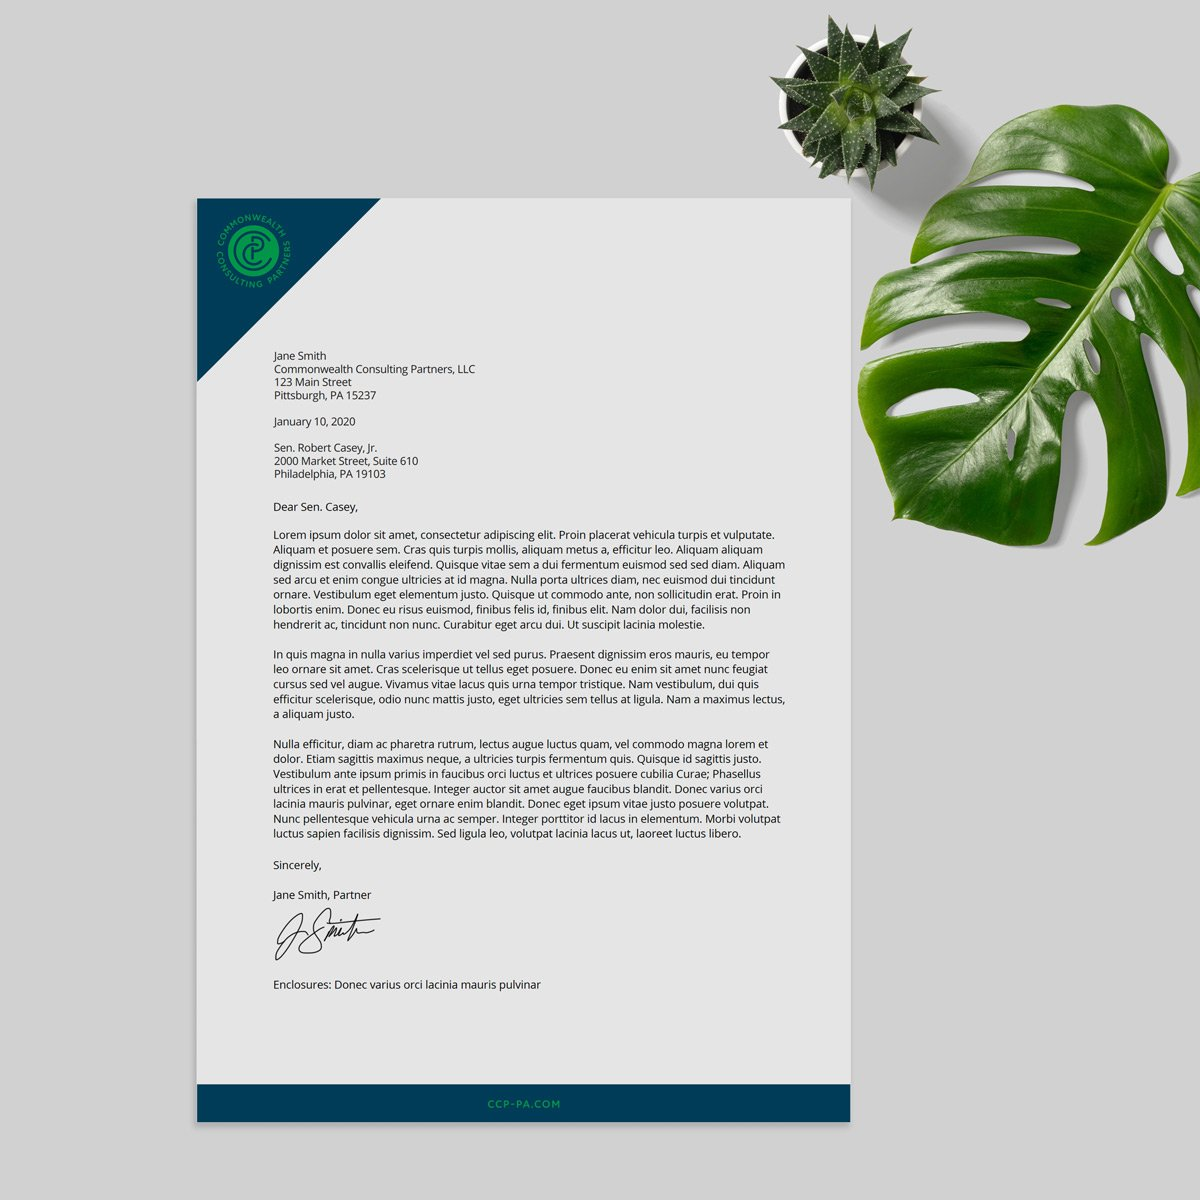 Commonwealth Consulting Partners Stationary